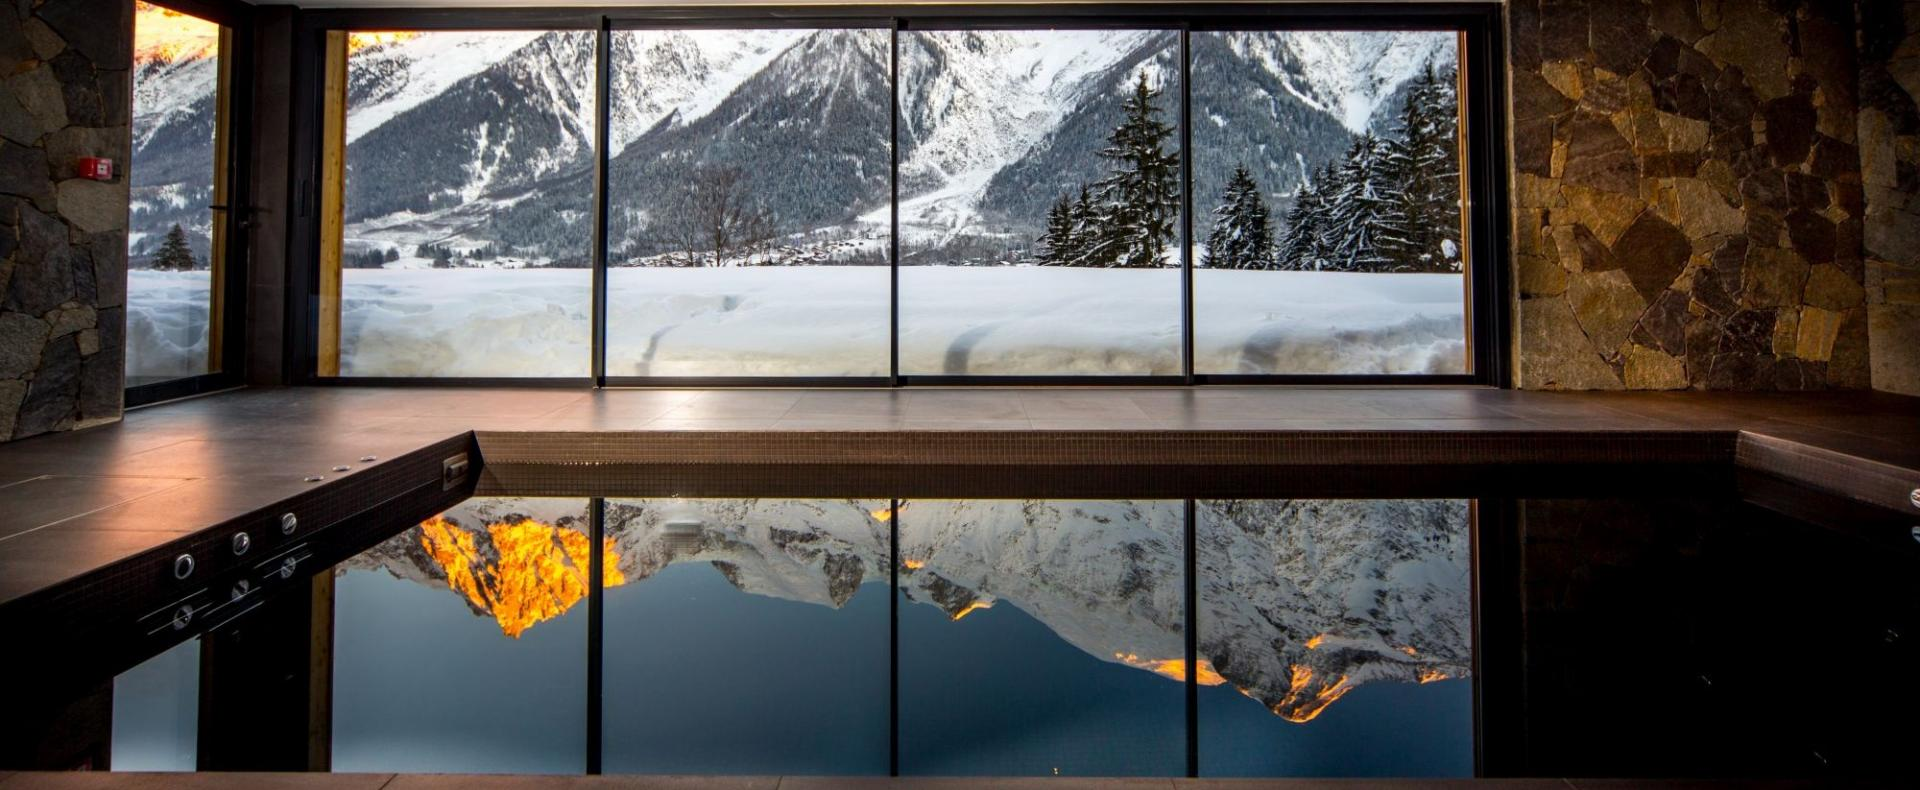 Pool-Le-Chalet-Mont-Blanc-Chamonix-Ultimate-Luxury-Chalets-UltraVilla